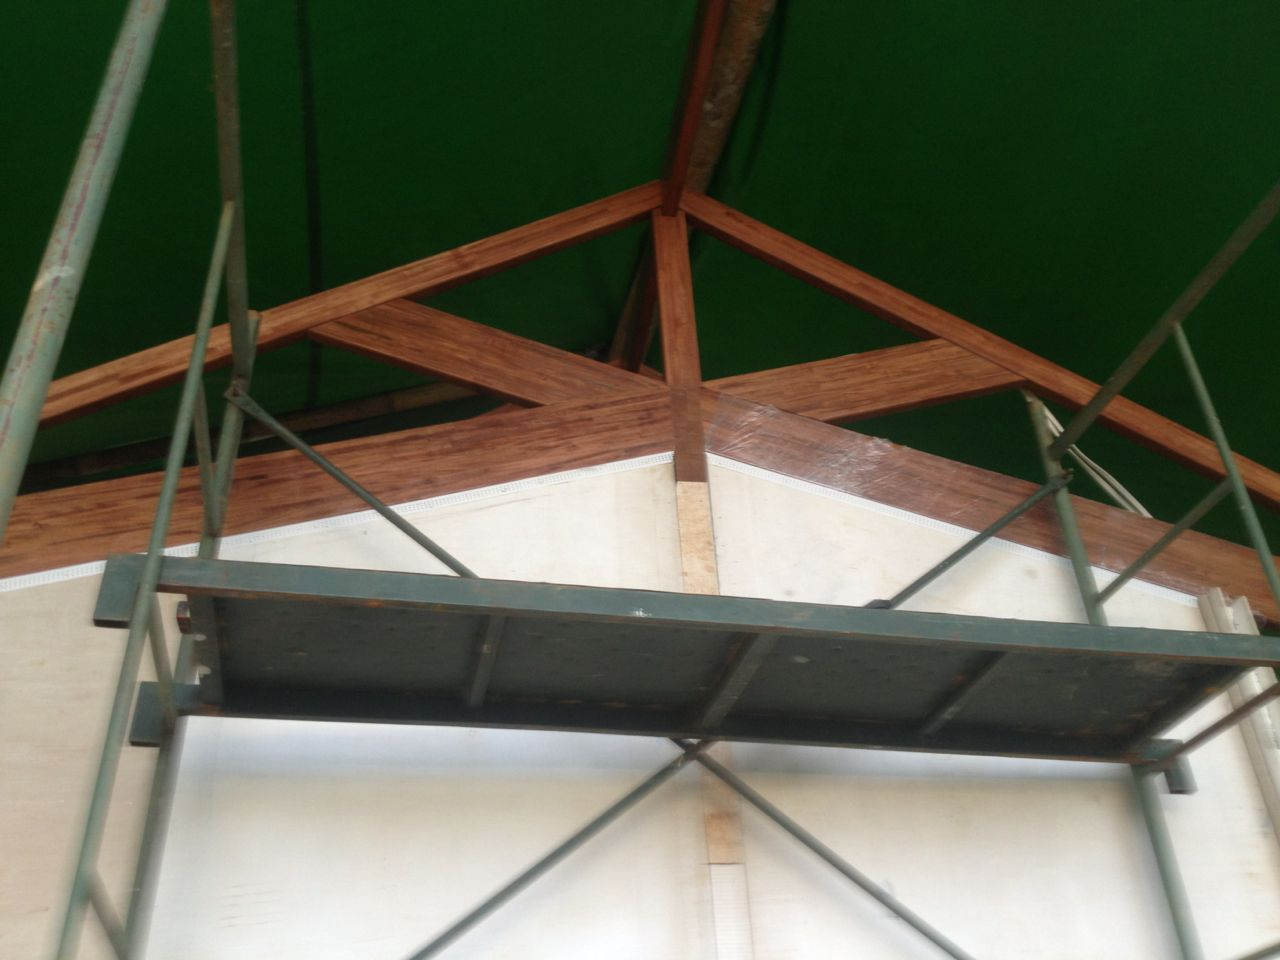 Front view of rafters